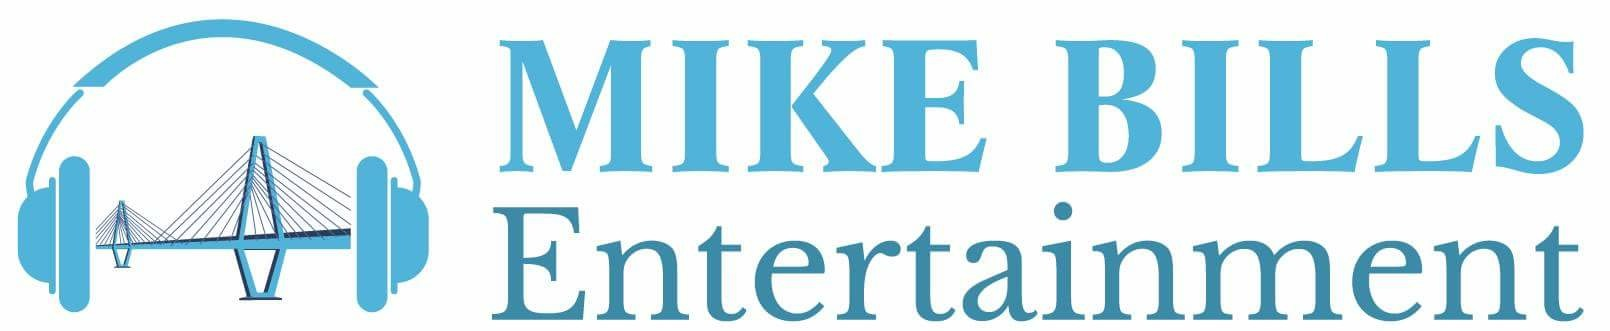 Mike Bills Entertainment Logo